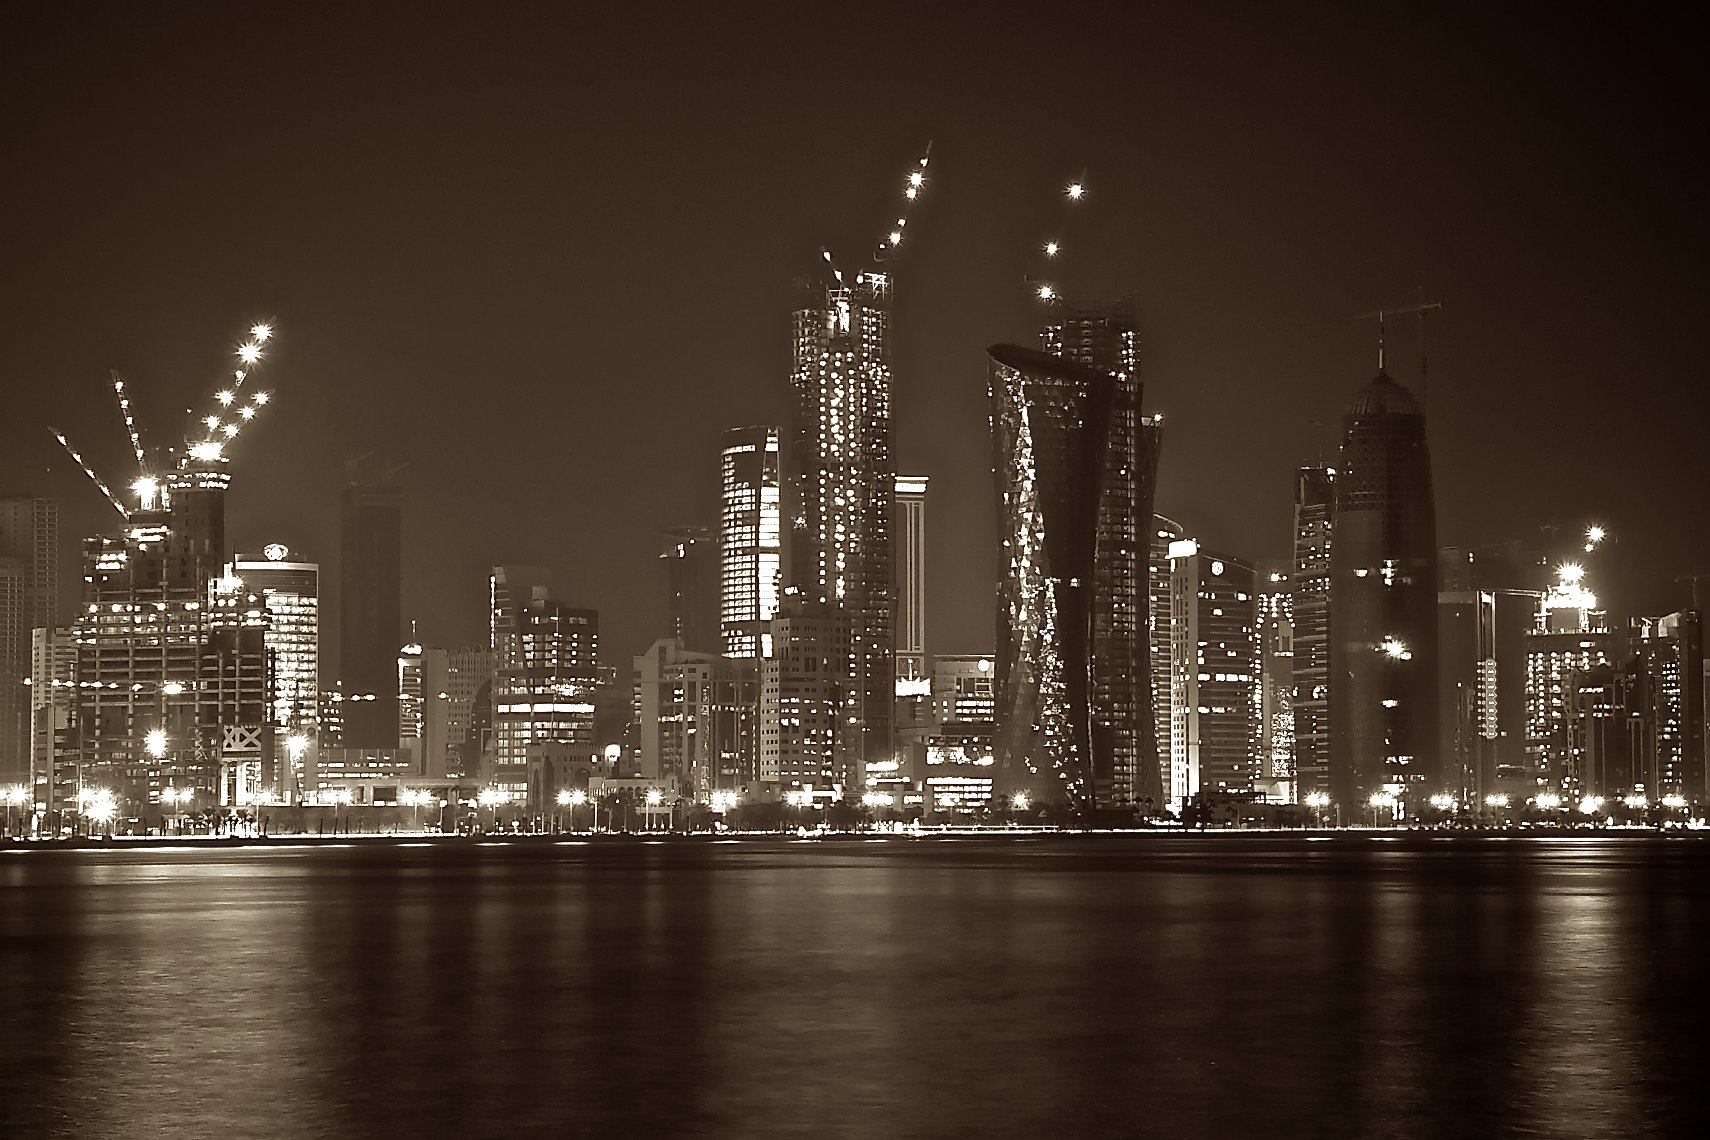 Qatar West Bay architecture at night